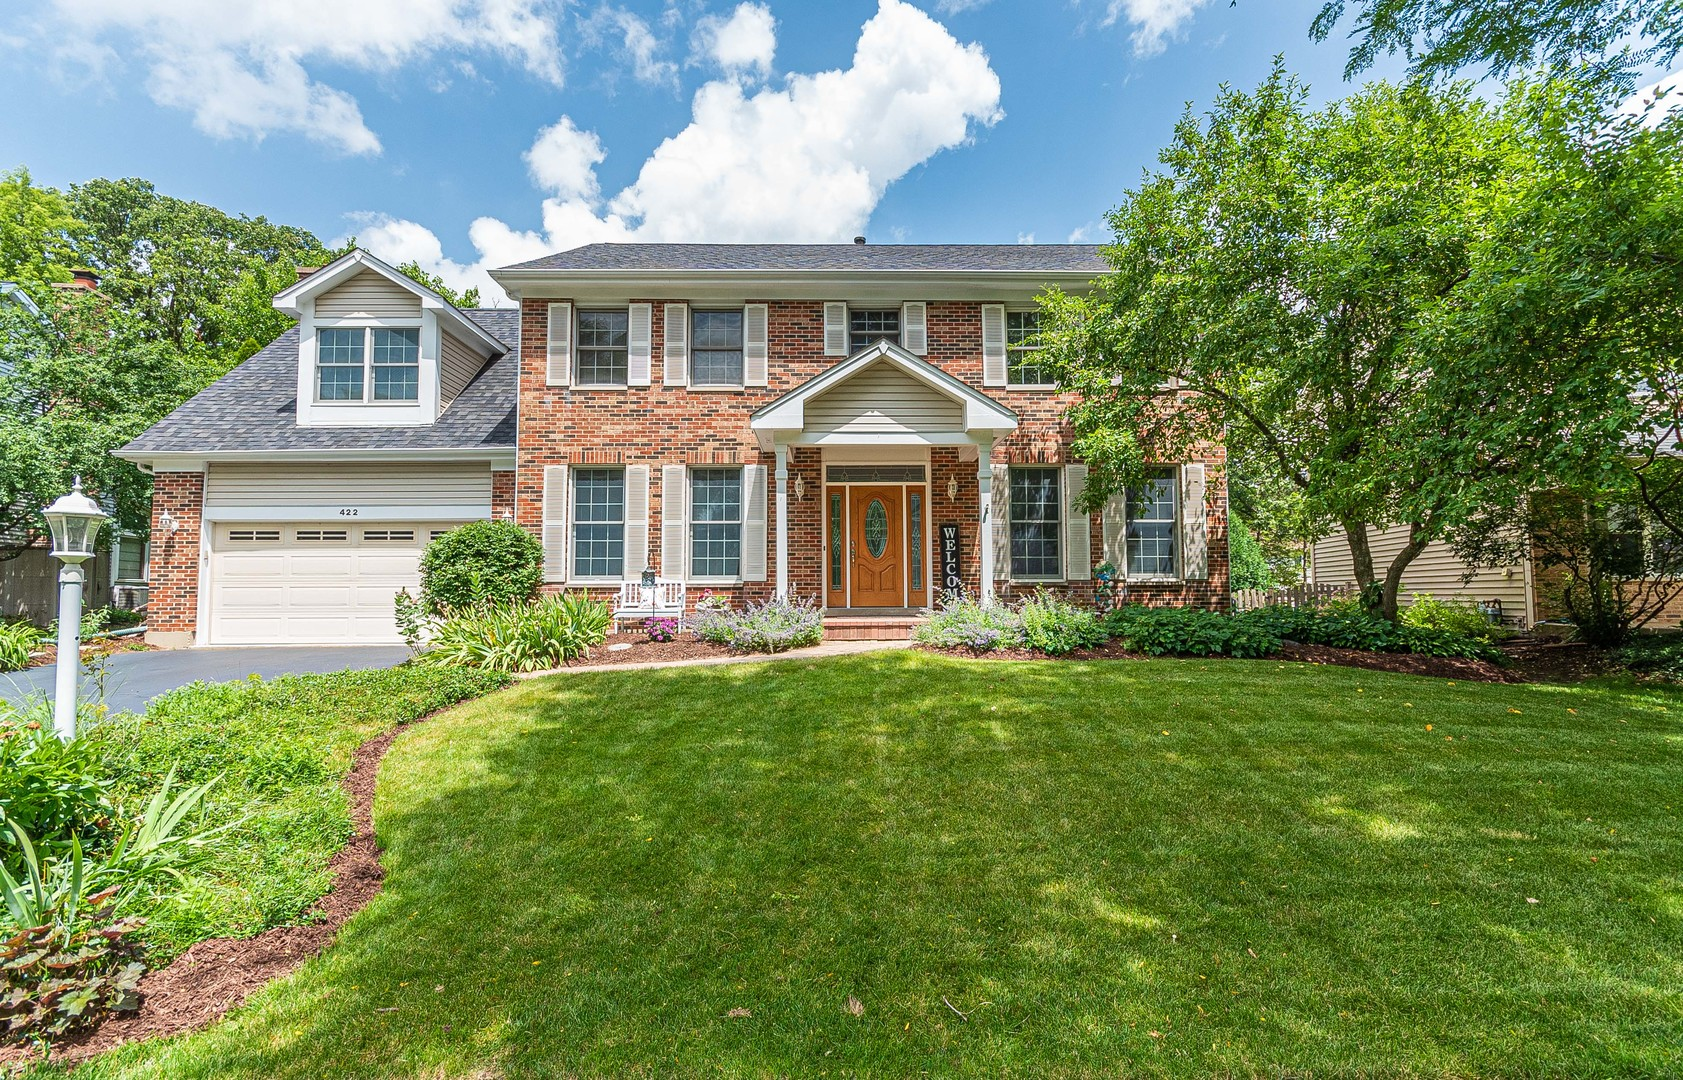 Photo for 422 Dunleer Drive, Cary, IL 60013 (MLS # 10721639)